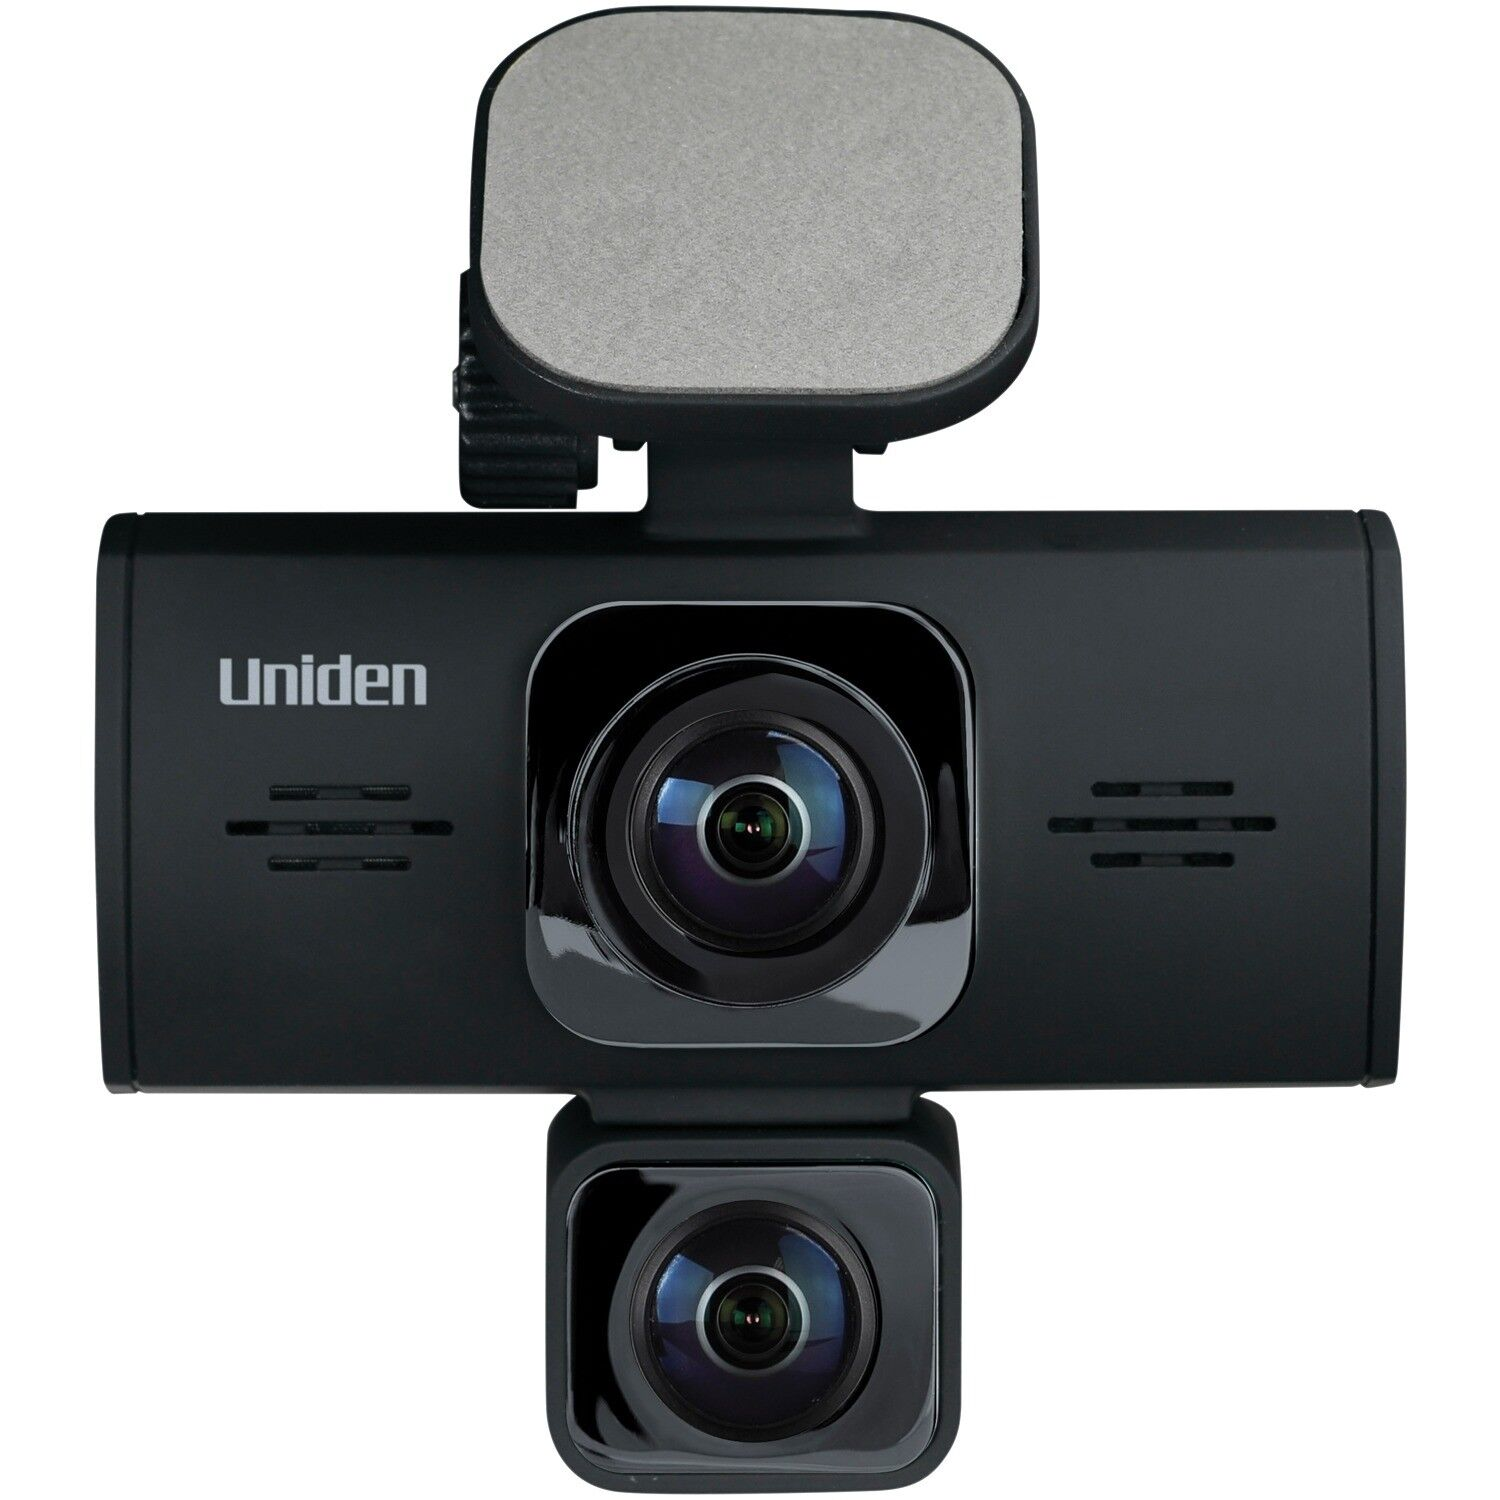 s-l1600 Uniden DC360 iWitness Dual-Camera Front and Rear Automotive Dashcam Video Record